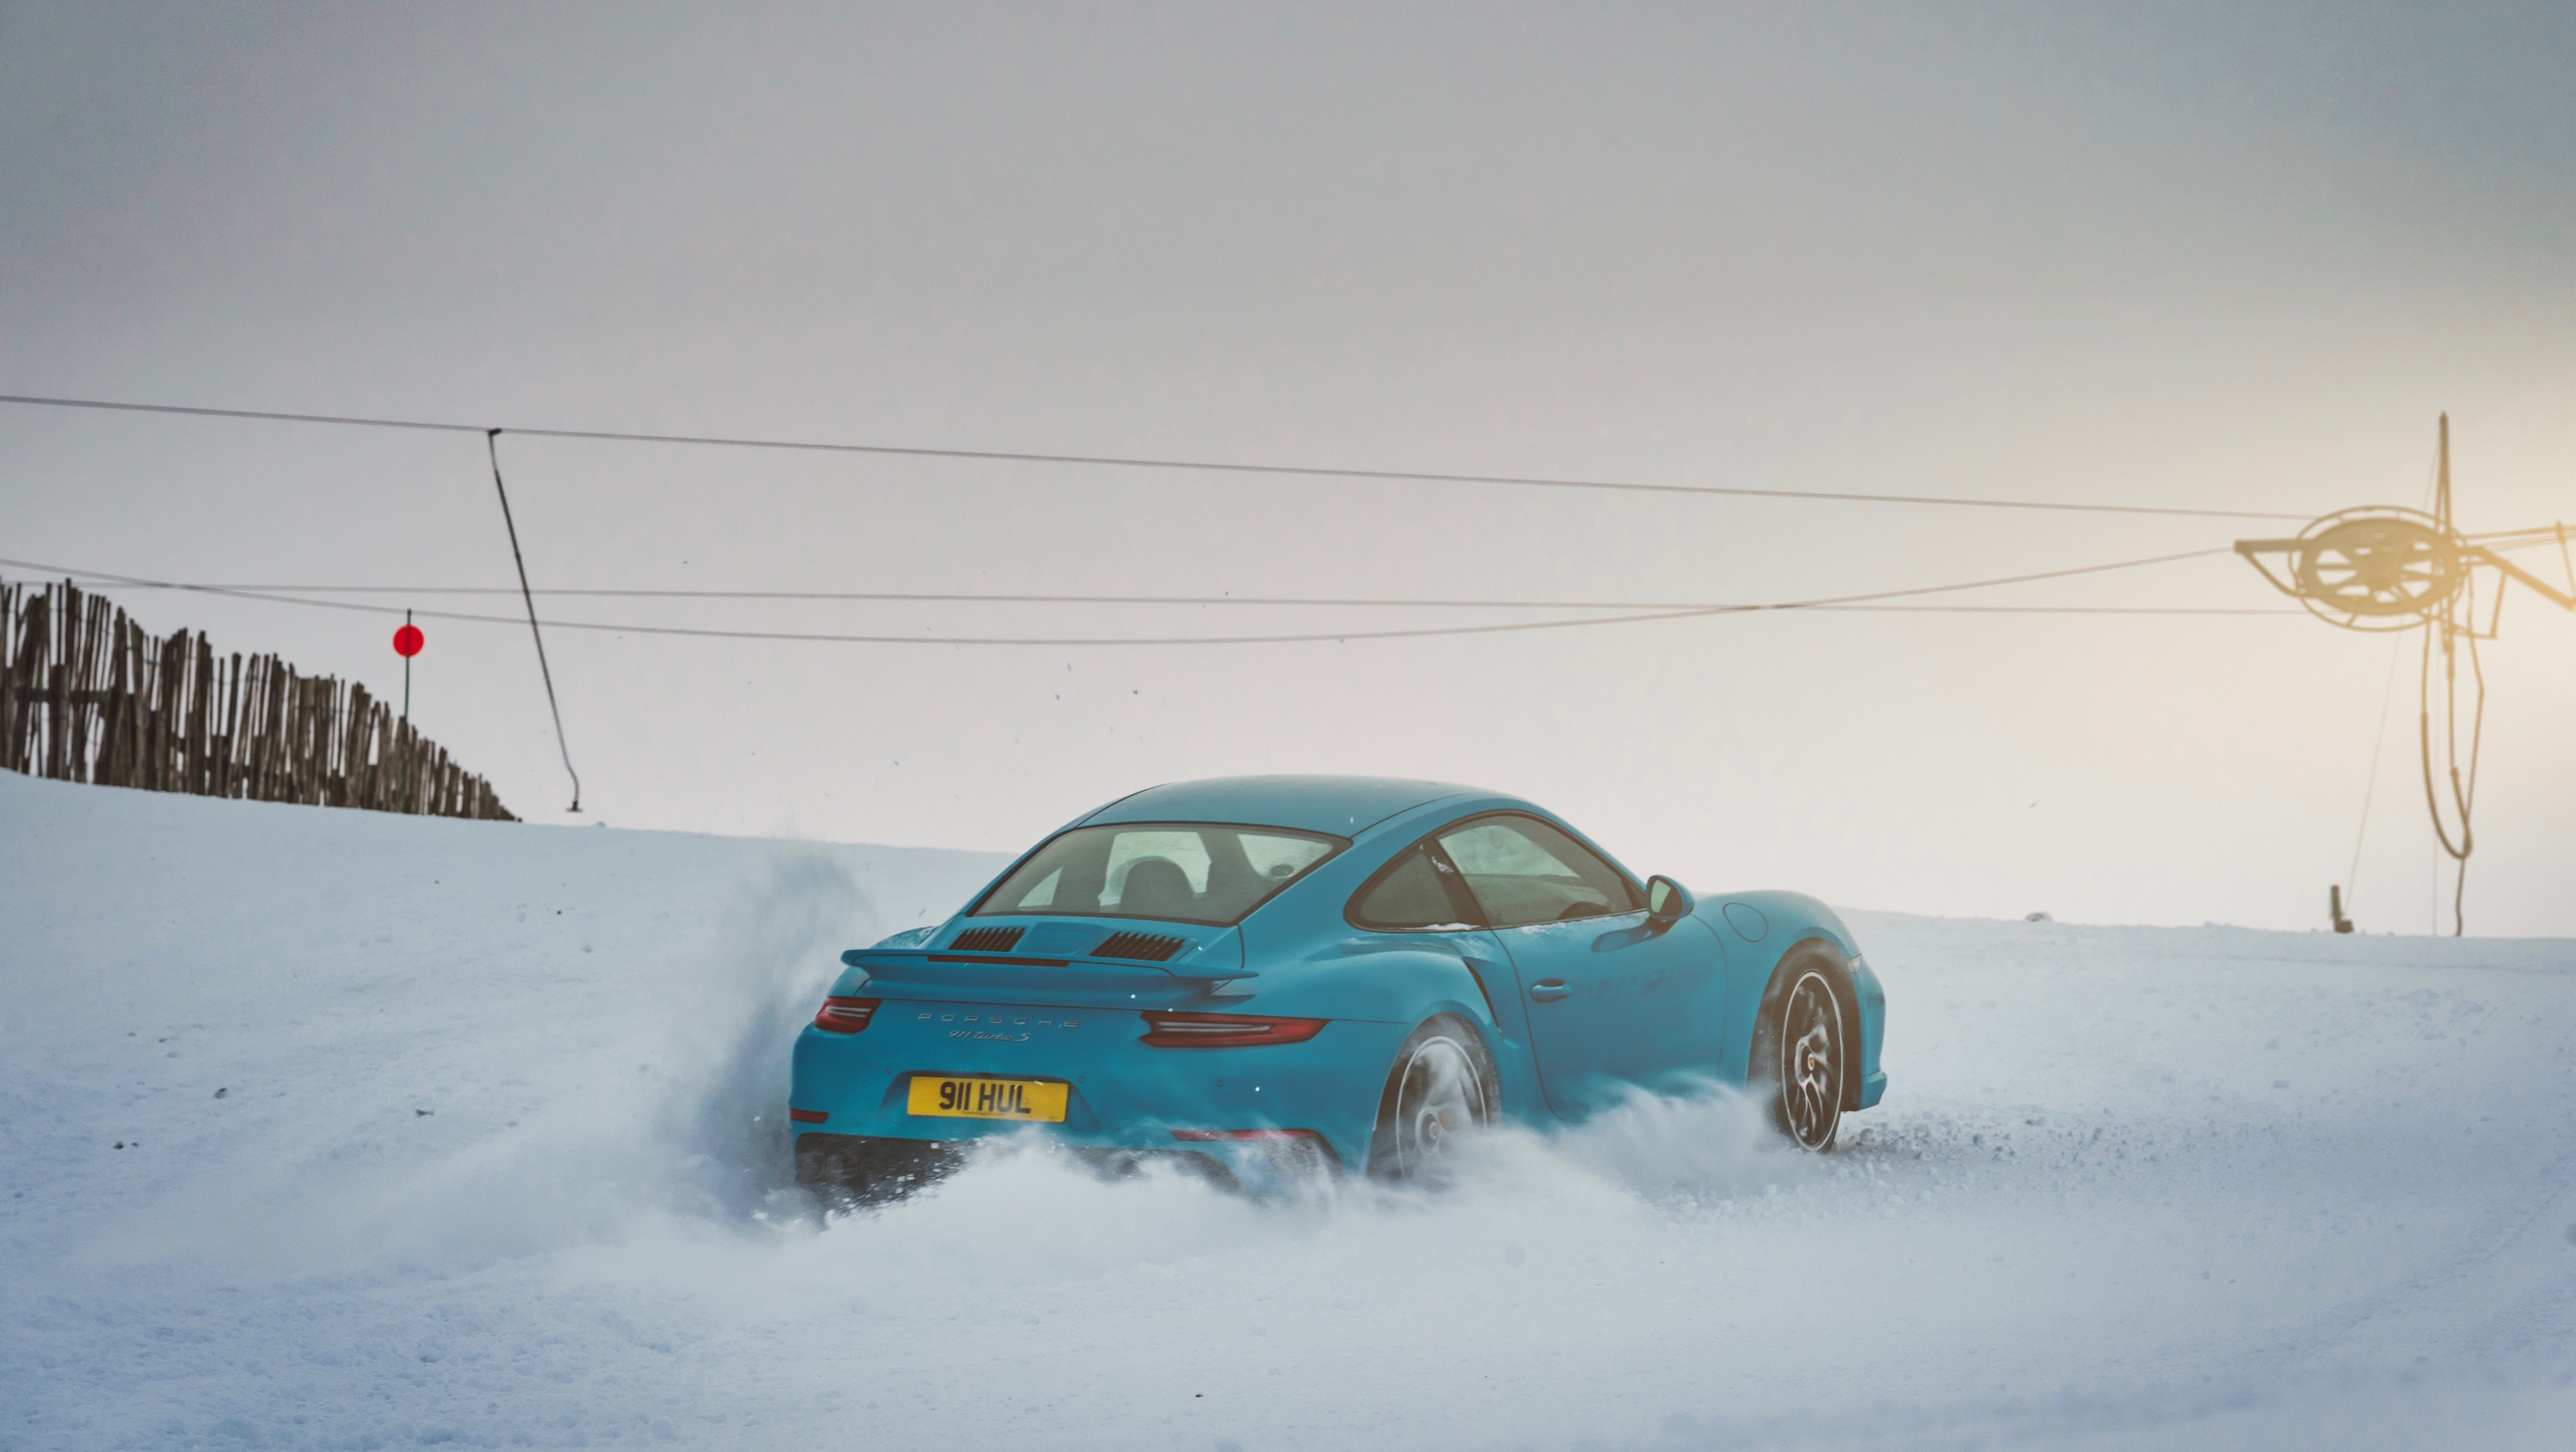 Highest-performing Porsche GT3 RS ever unveiled